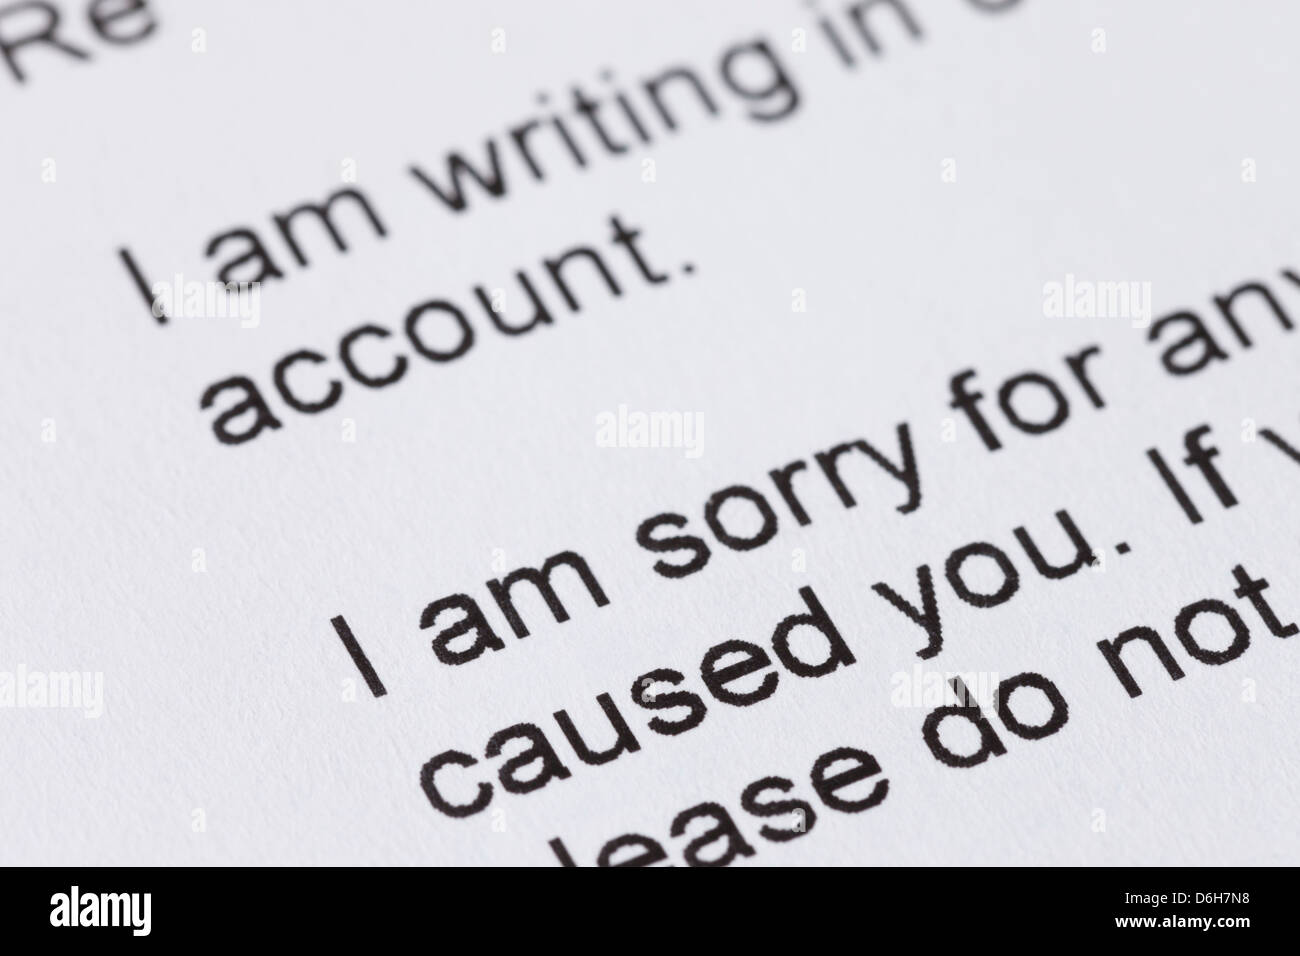 Apology Stock Photos Apology Stock Images Alamy